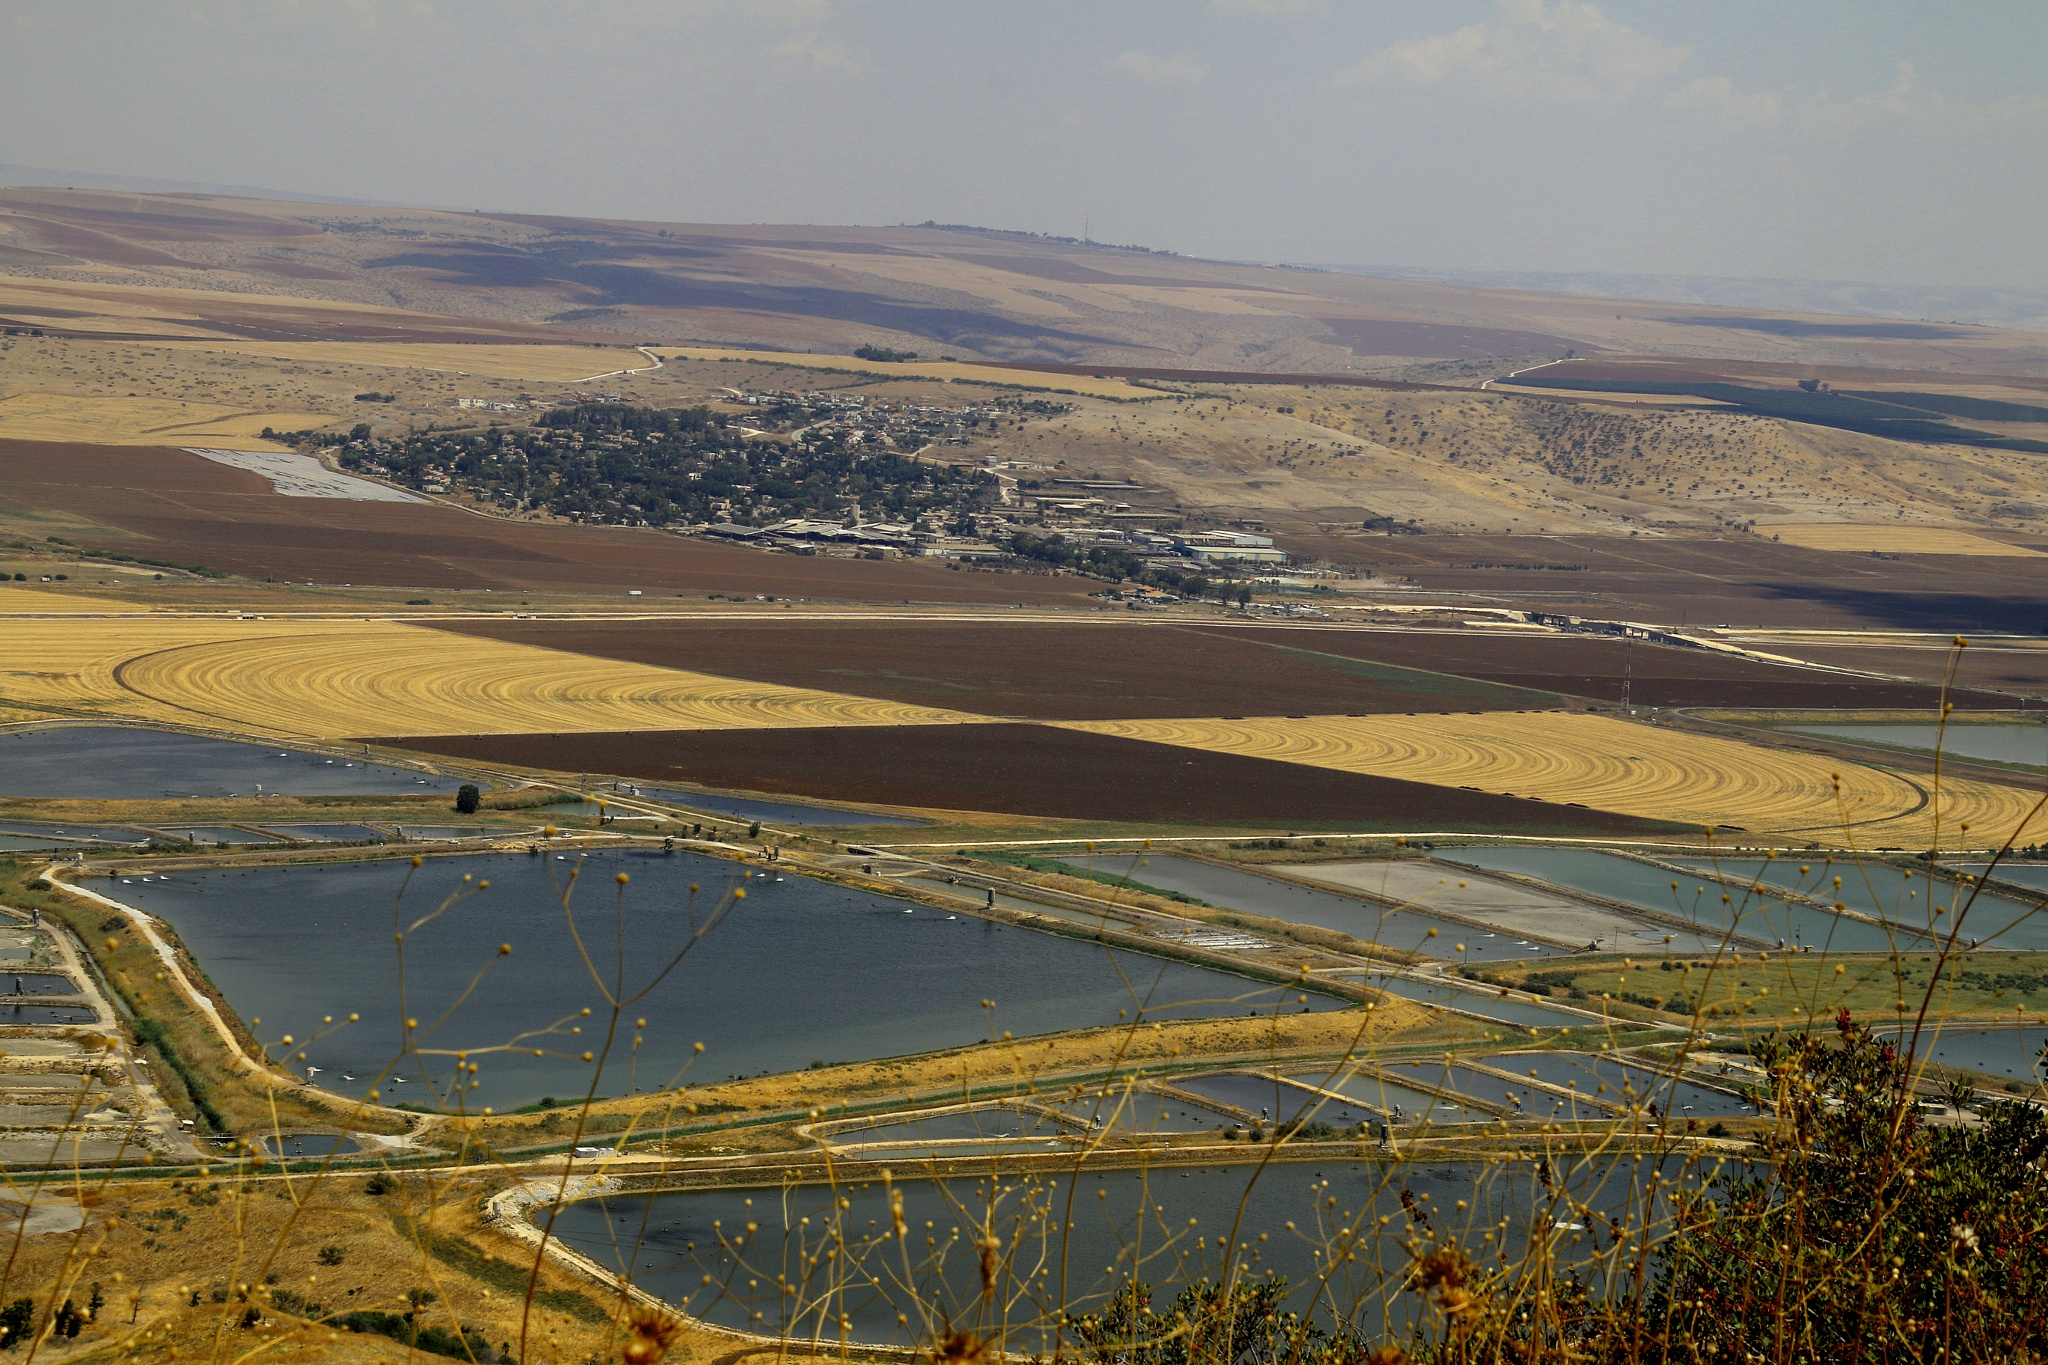 Fish ponds and cultivated fields by ITZIK YOTVAT